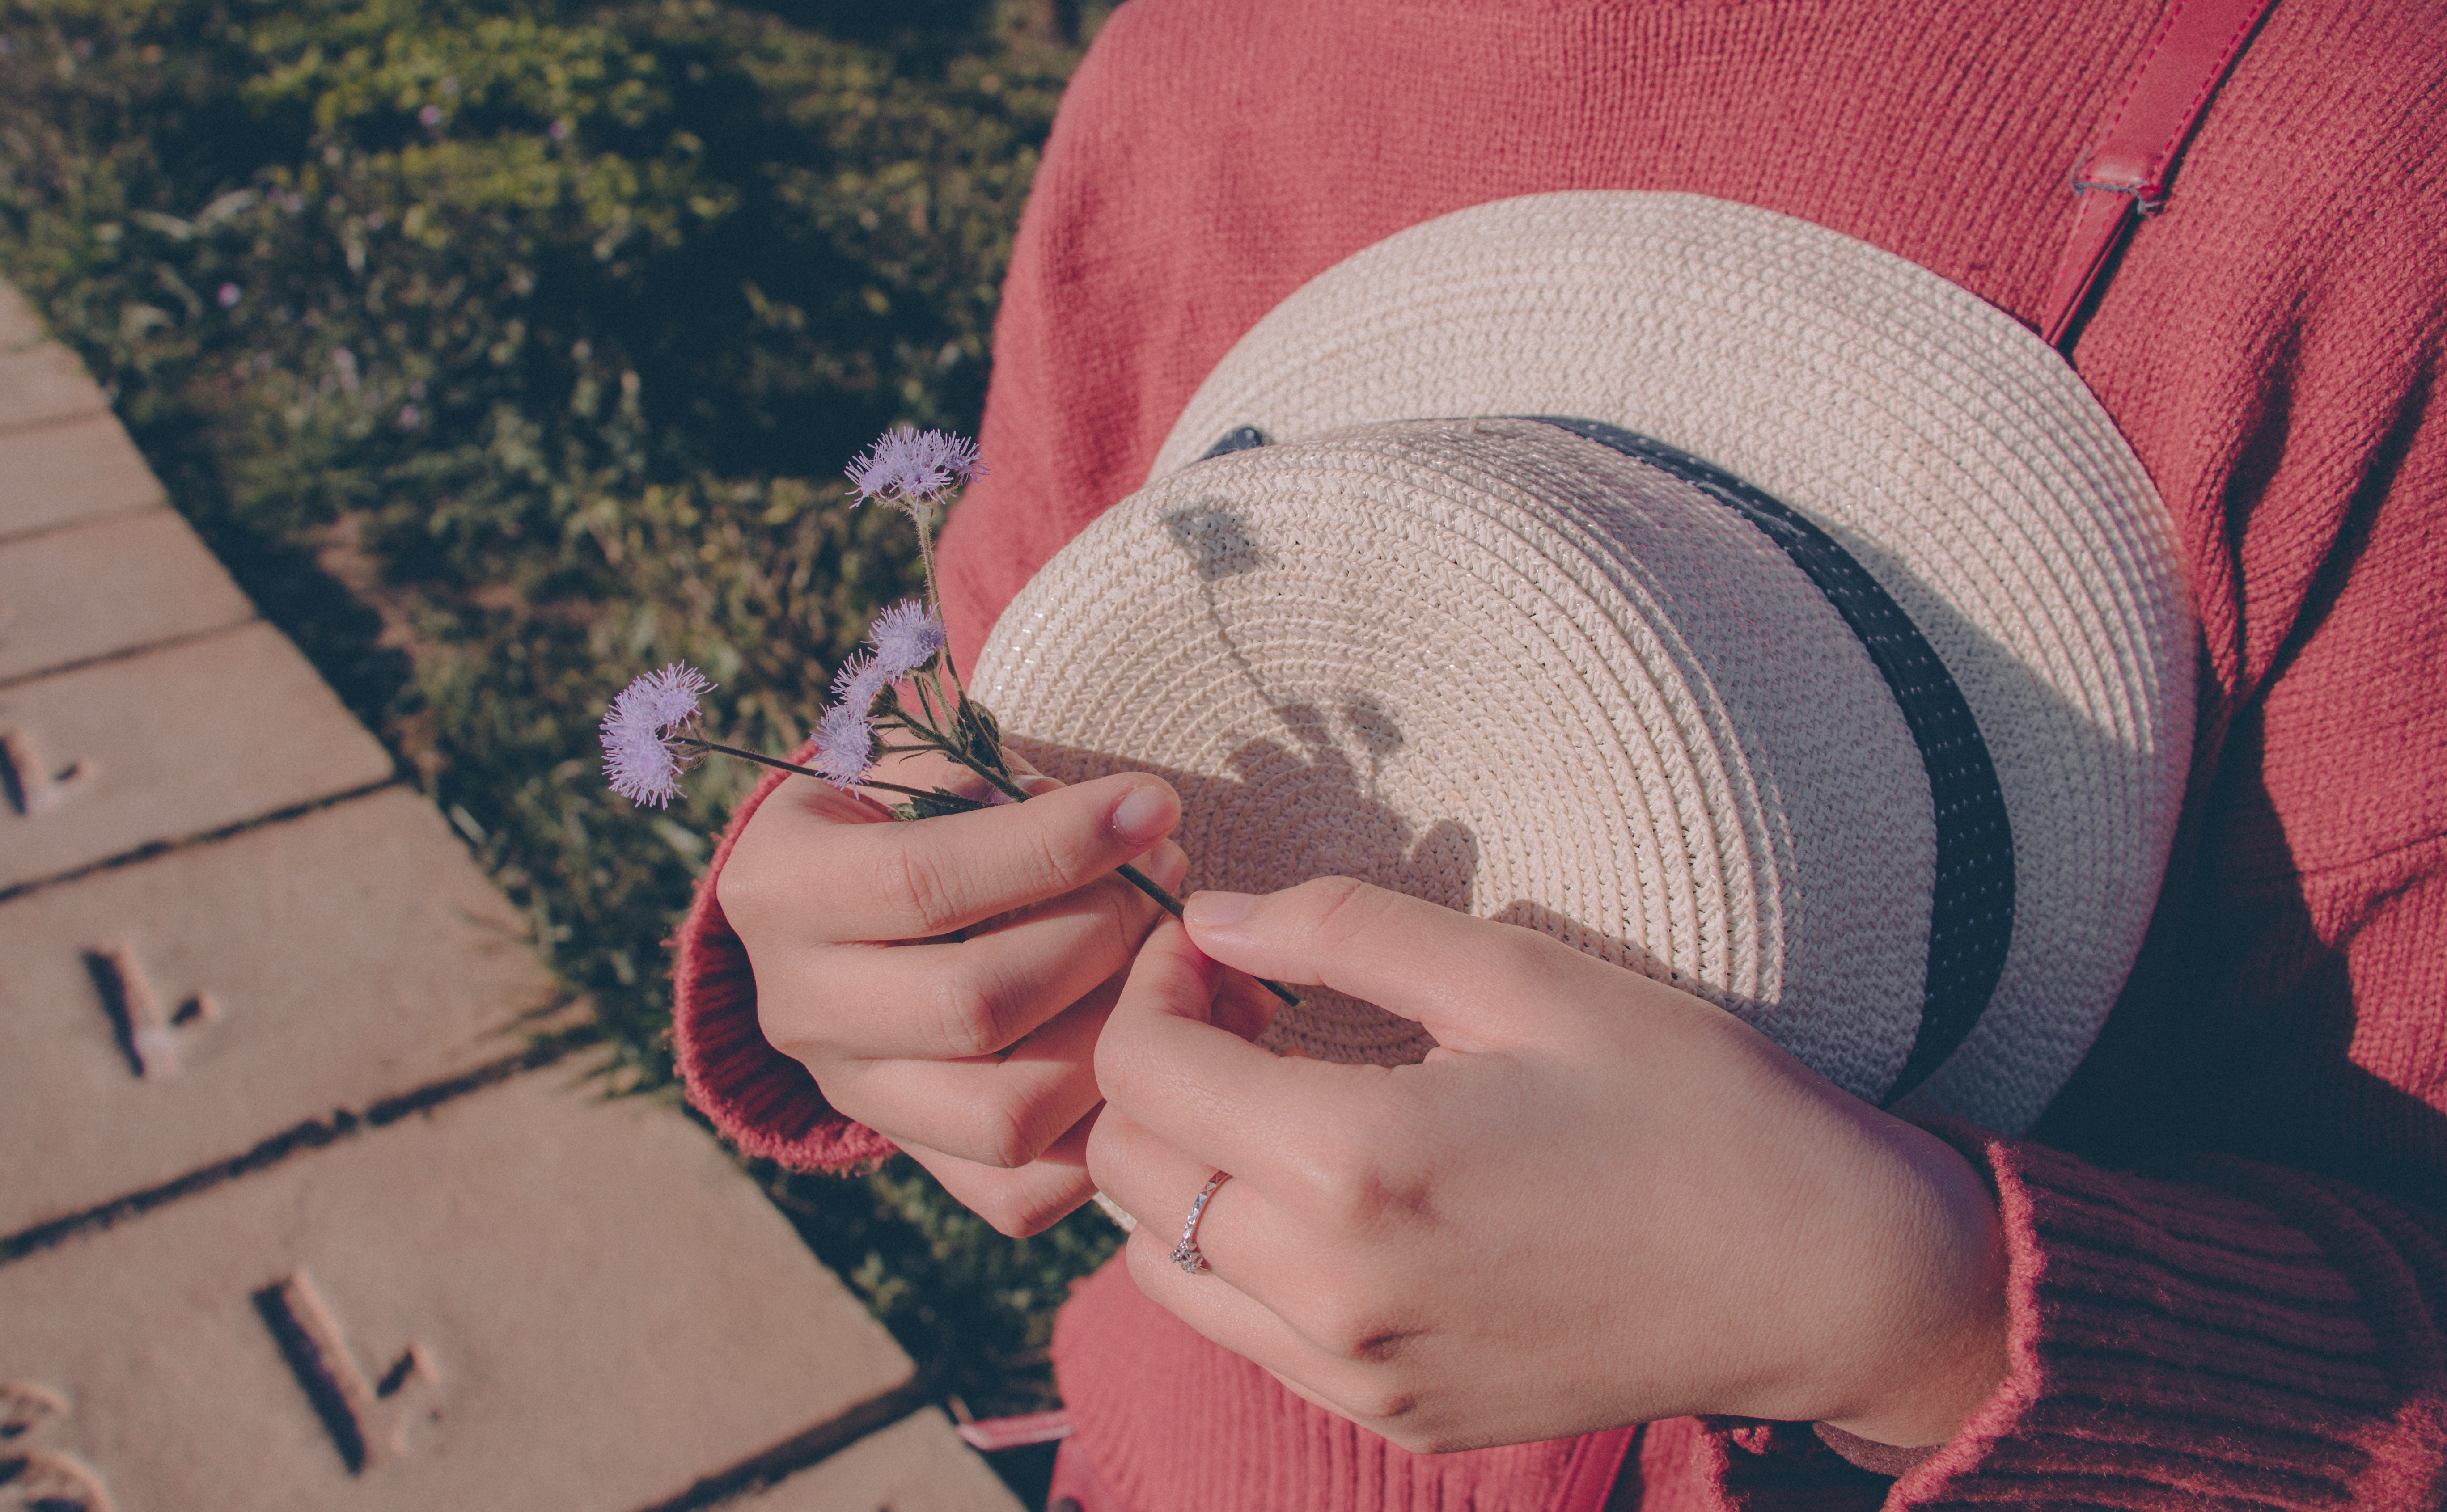 Person wearing sweater holding flower and hat photo